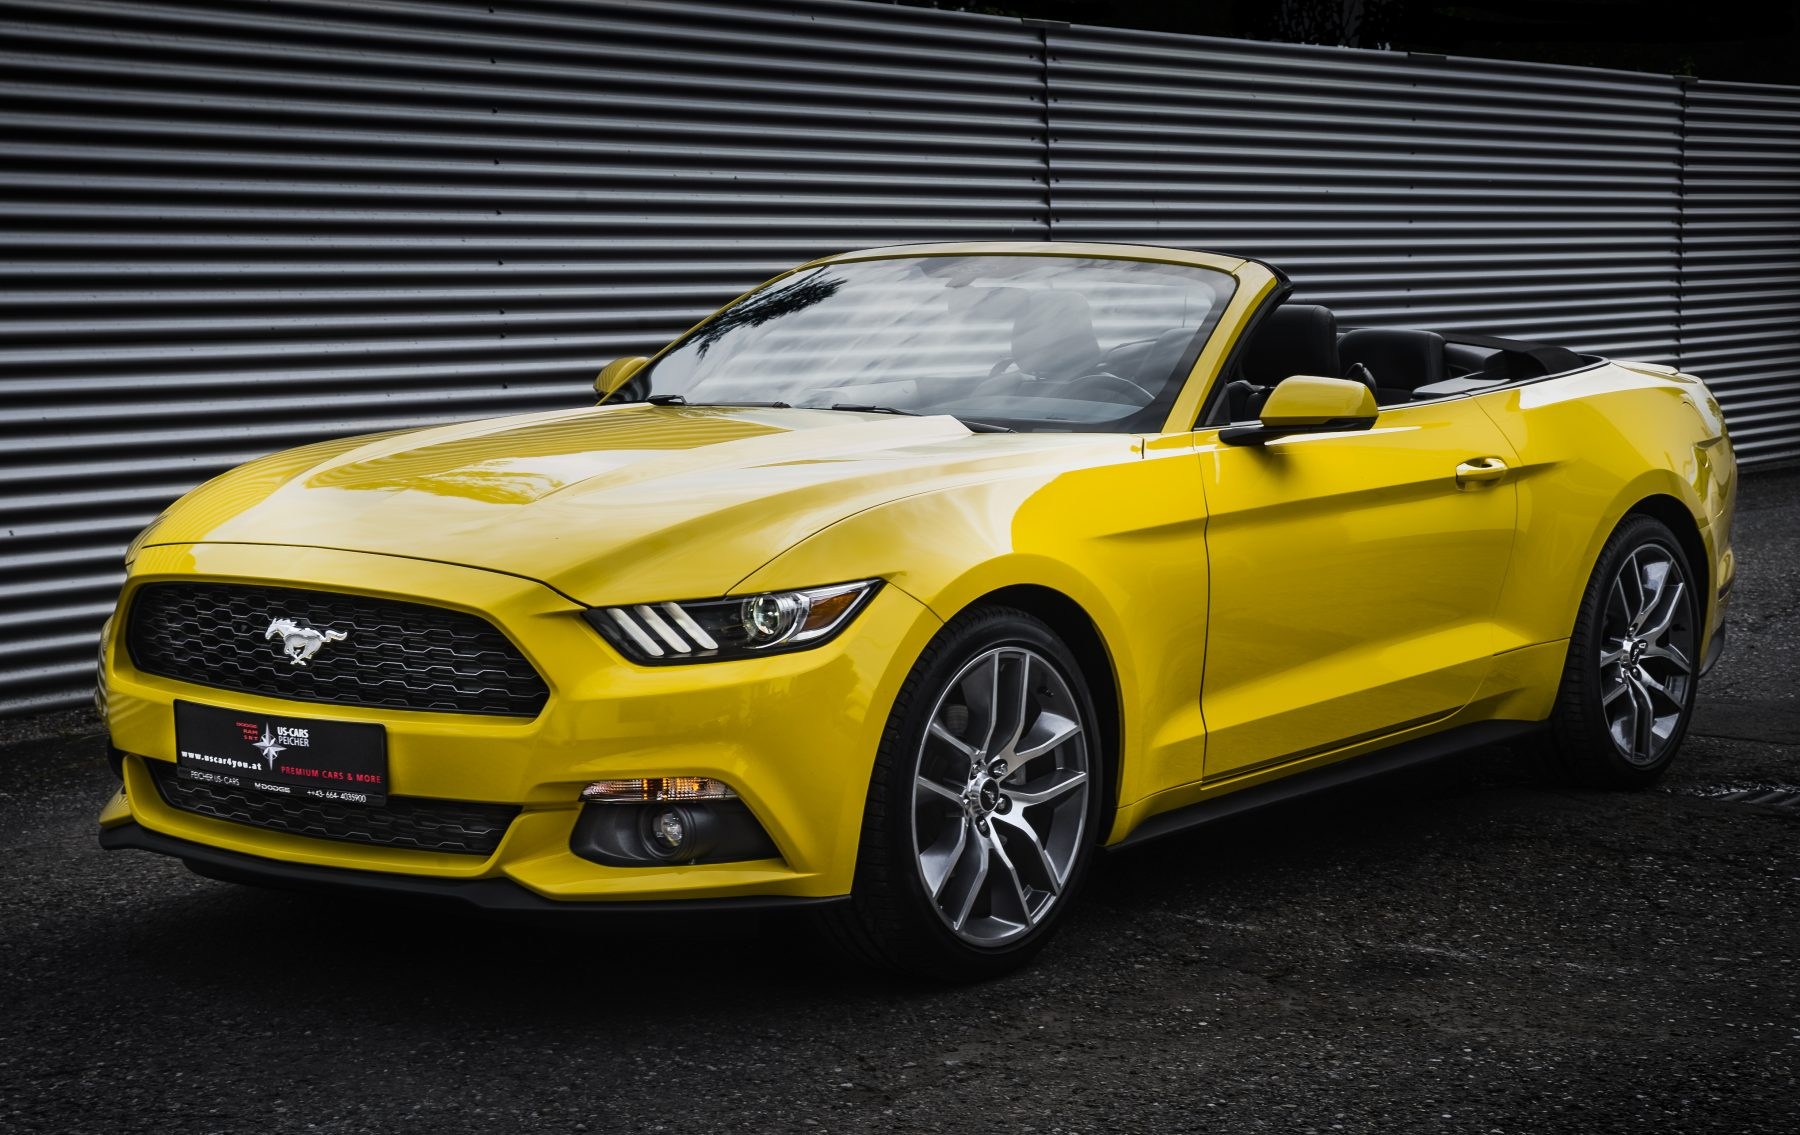 ford mustang 2 3 ecoboost convertible peicher automotive. Black Bedroom Furniture Sets. Home Design Ideas